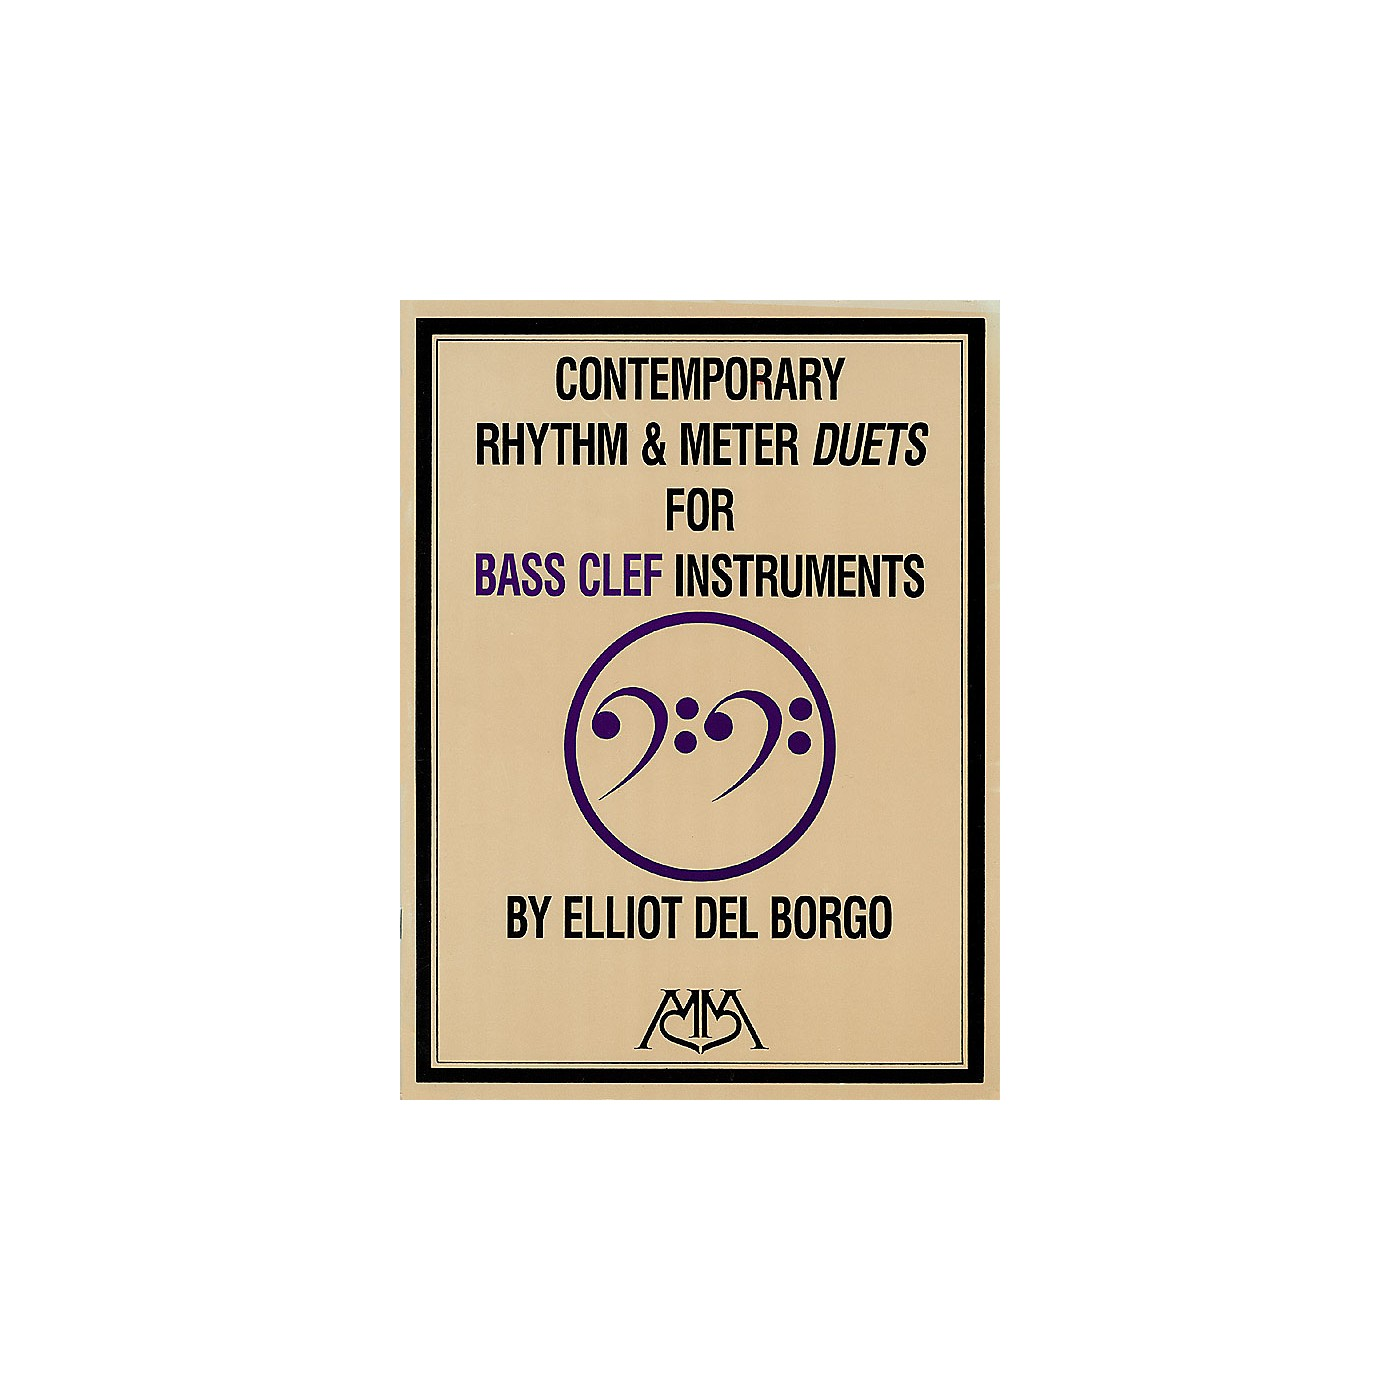 Hal Leonard Contemporary Rhythm and Meter Duets Meredith Music Resource Series by Elliot DelBorgo thumbnail